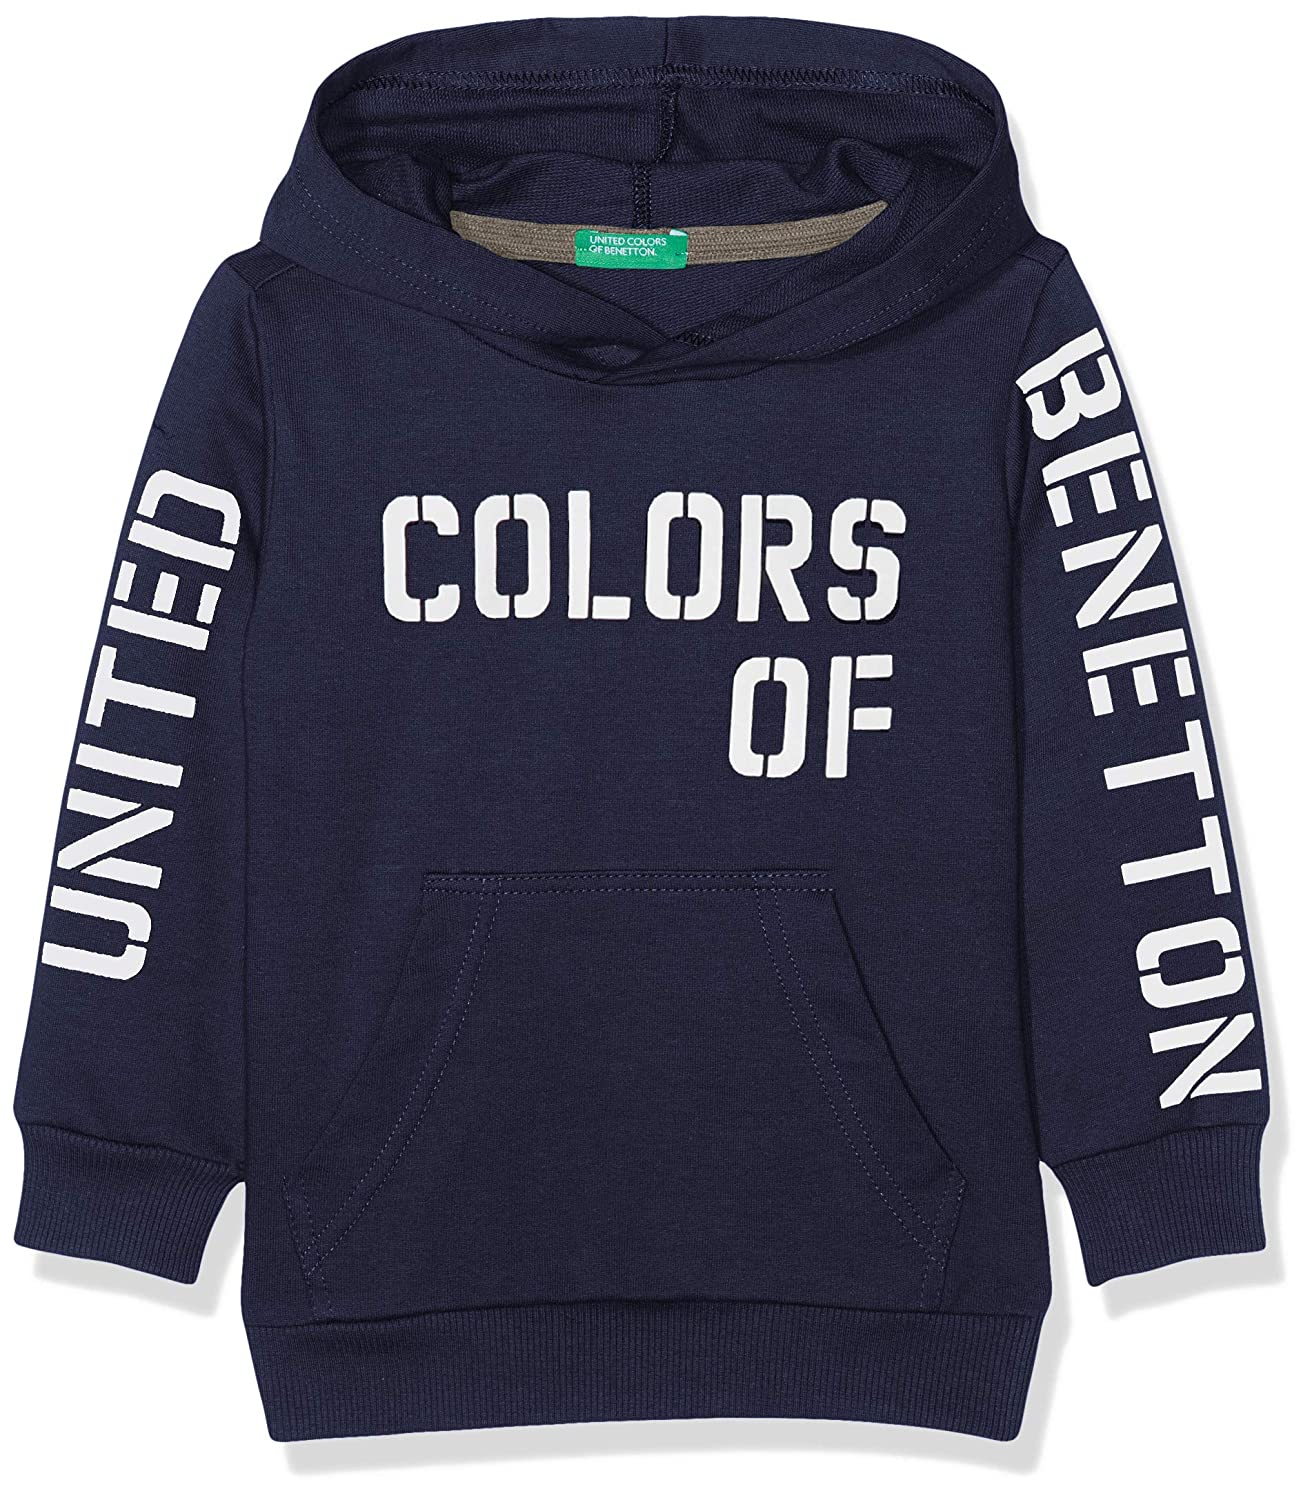 United Colors of Benetton Sweater W/Hood, suéter para Niños: Amazon.es: Ropa y accesorios